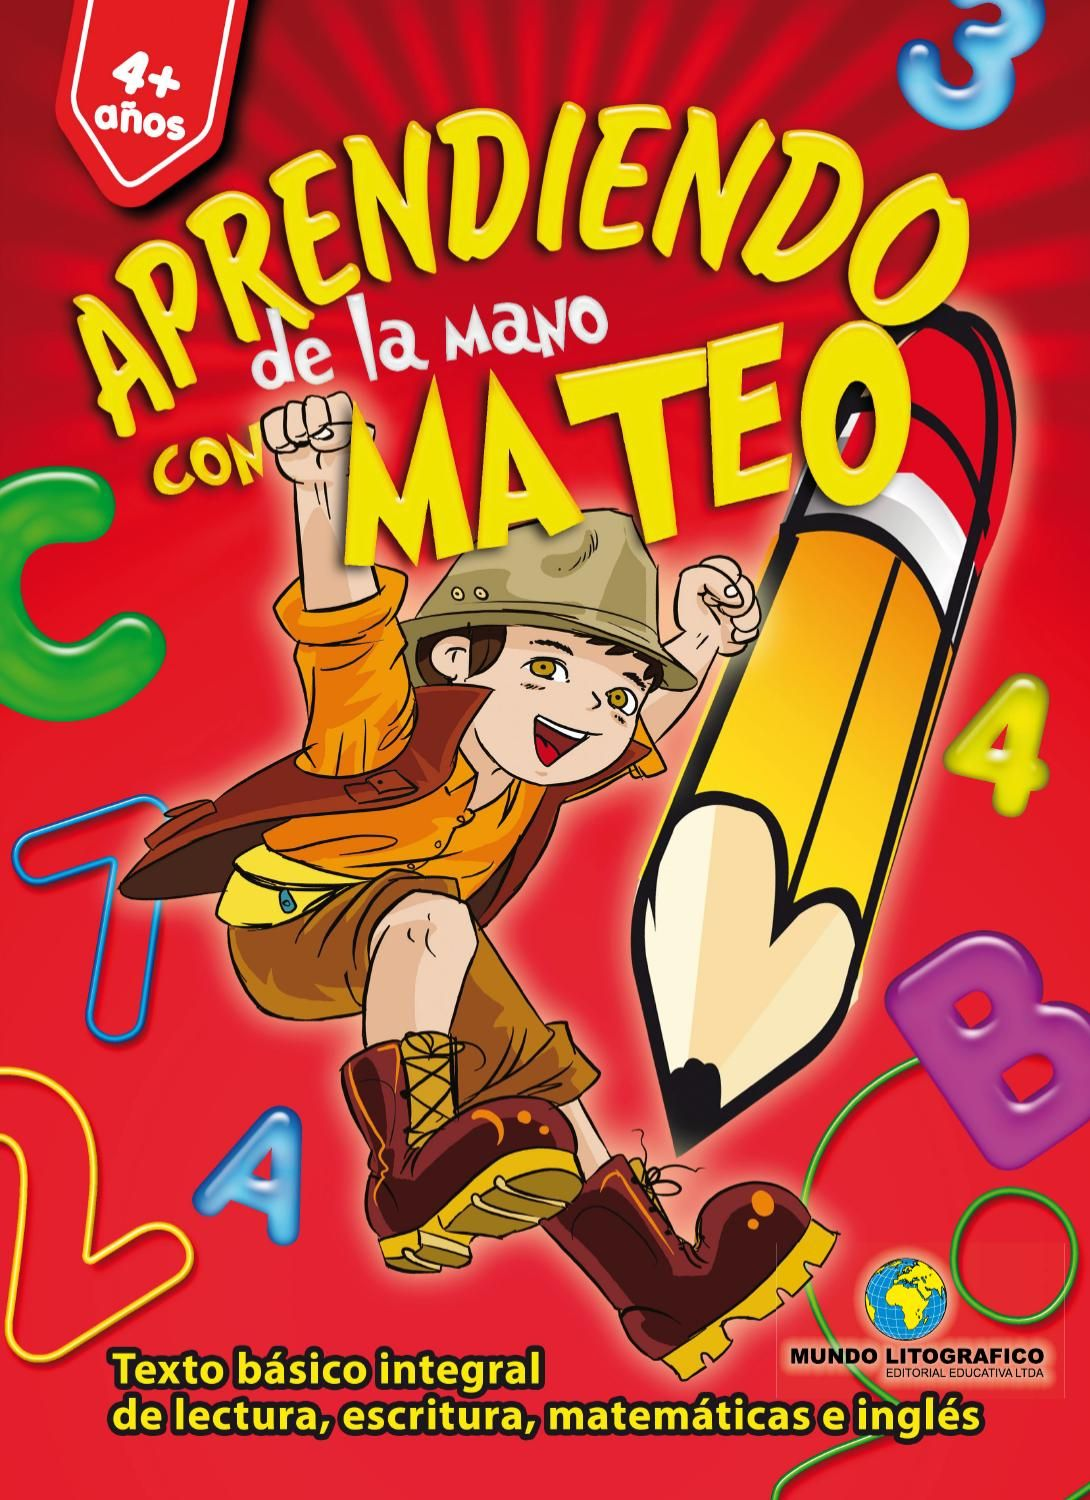 Descargar Libro Duermete Niño Download As Pdf Cartilla Aprendiendo Con Mateo By Danny